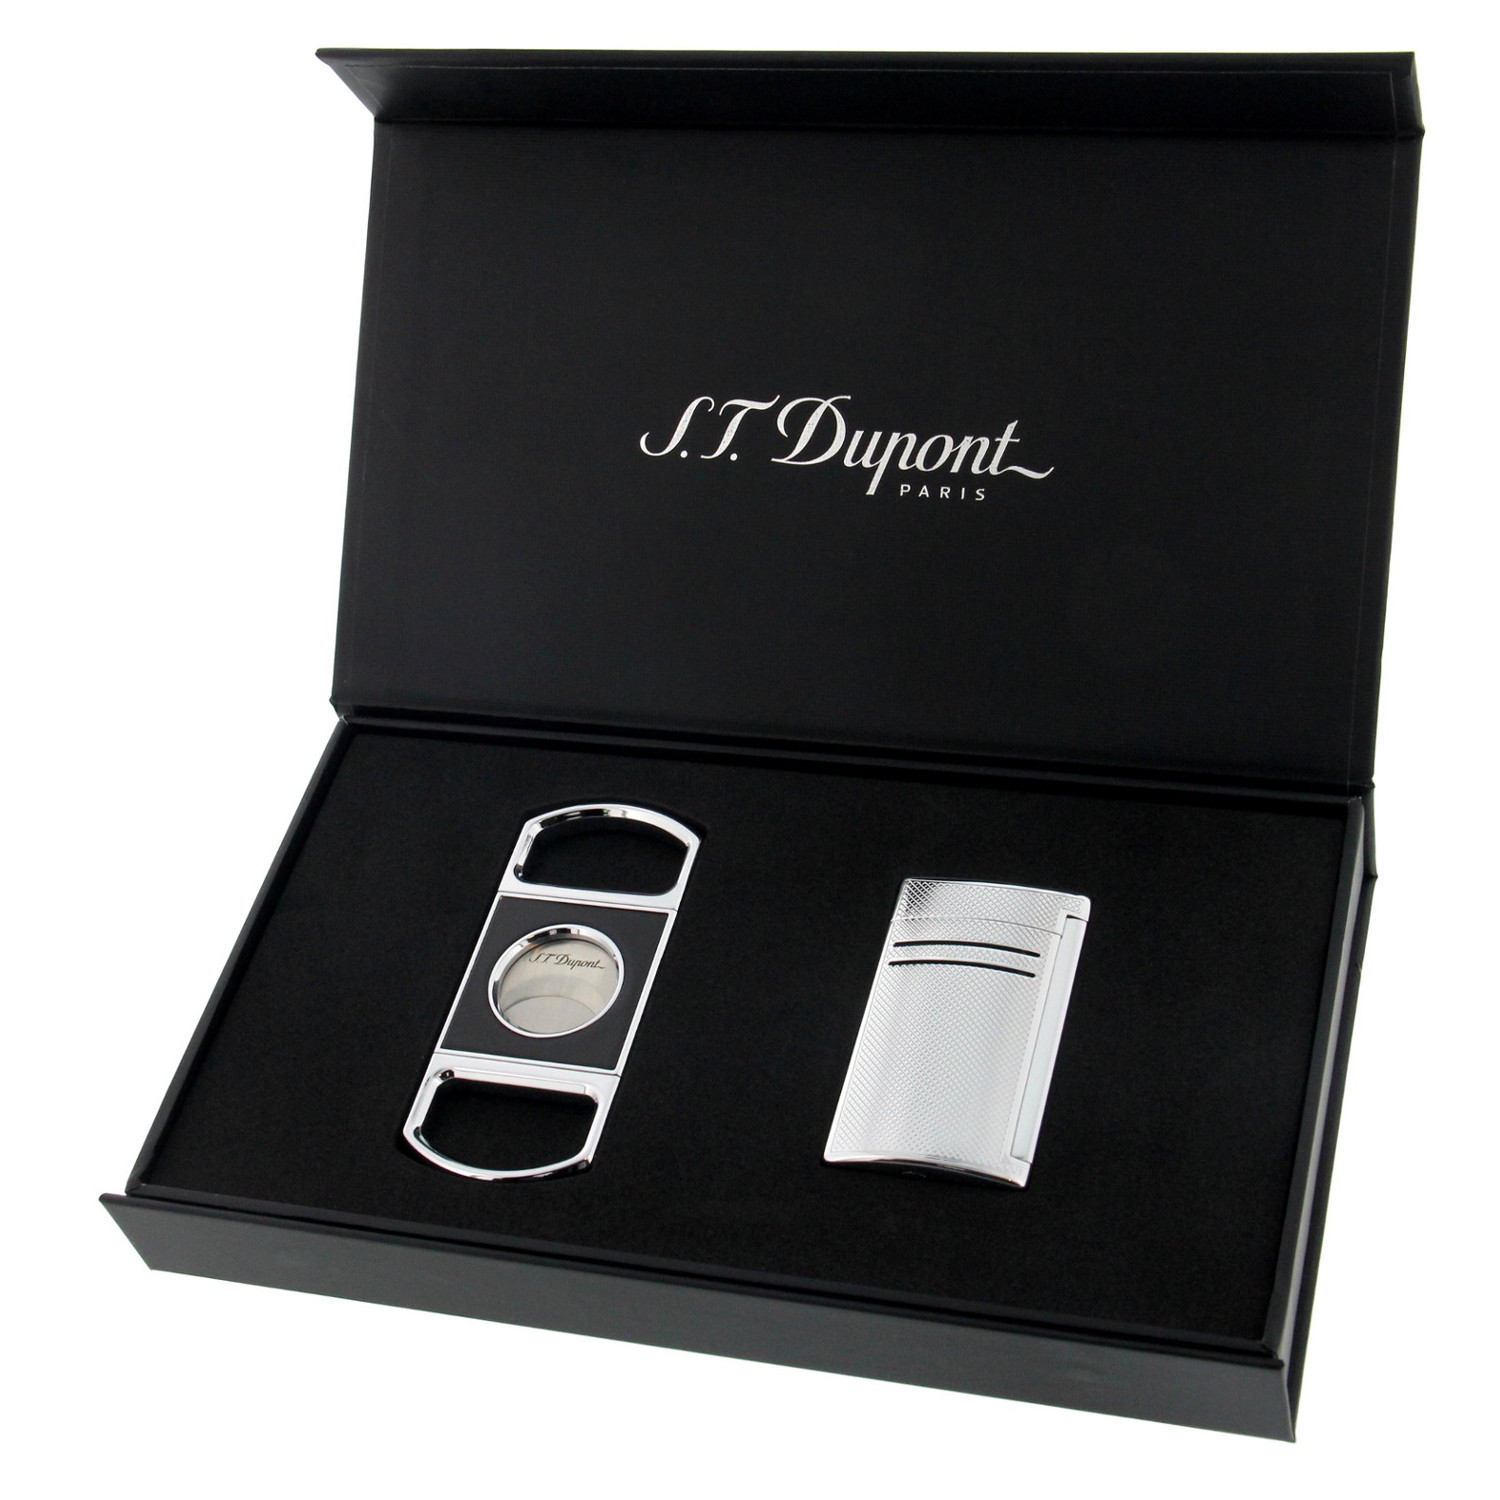 S.T. Dupont Set - MaxiJet Chrome Grid & Cigar Cutter